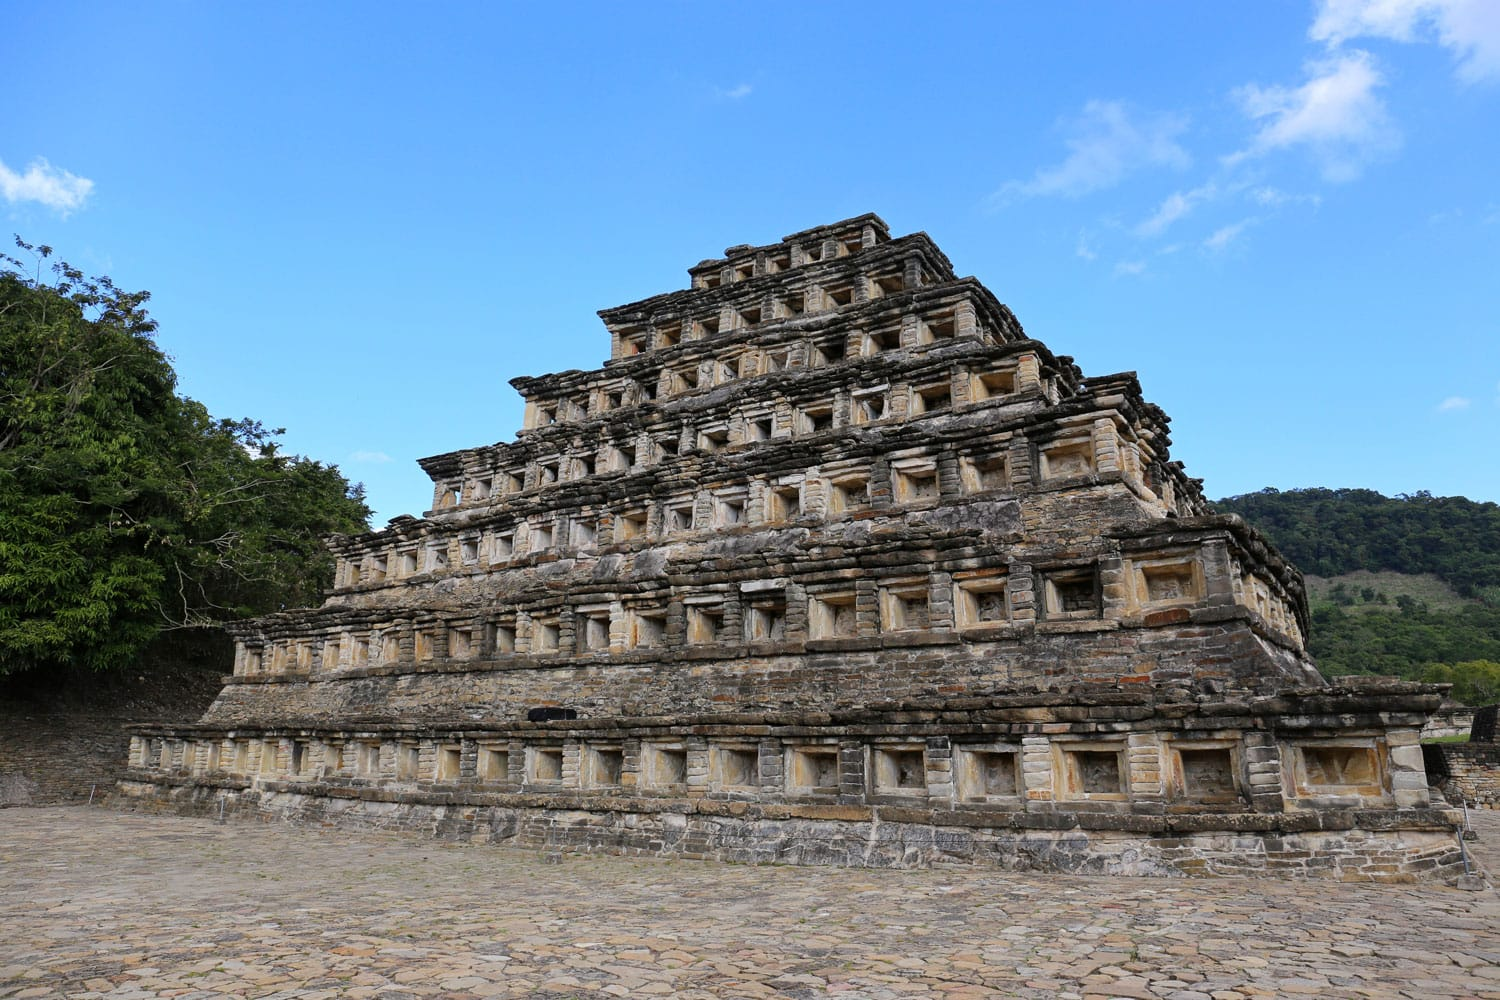 Archaeological site of El Tajin, Veracruz, Mexico